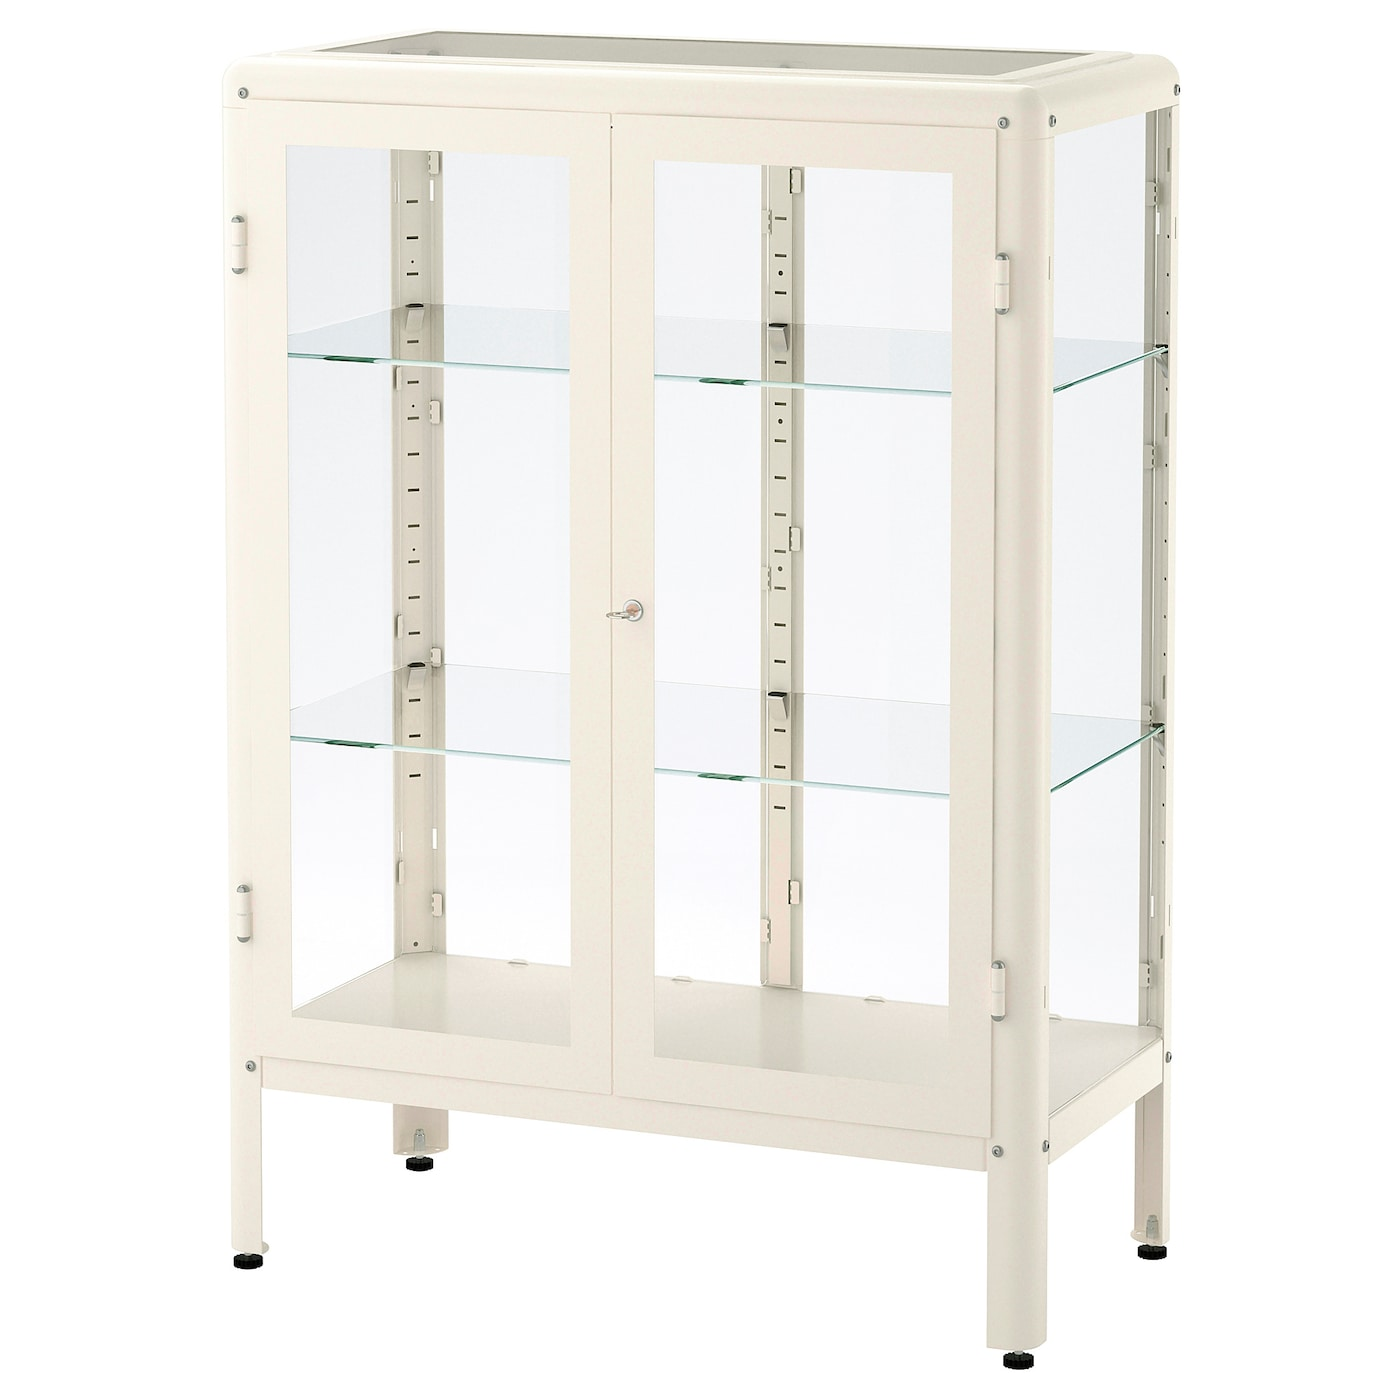 klingsbo glass door cabinet ikea fabrikr glassdoor cabinet adjustable feet stands steady cabinet t25 cabinet